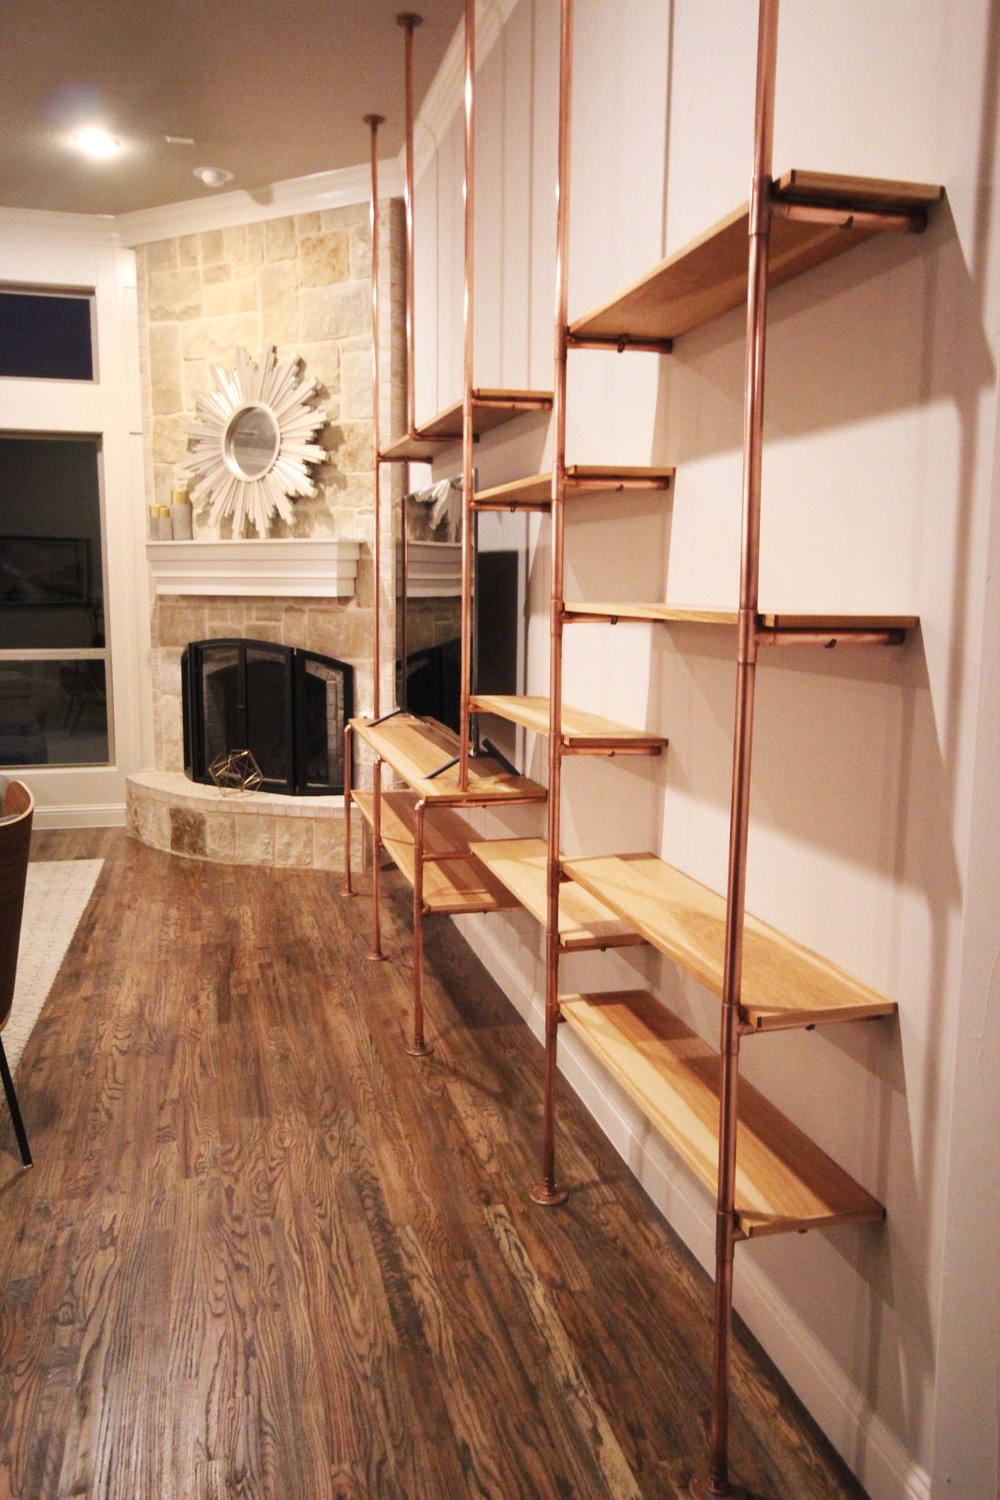 COPPER & PECAN SHELVES - RESIDENCE IN FARMERS BRANCH, TX - 2017